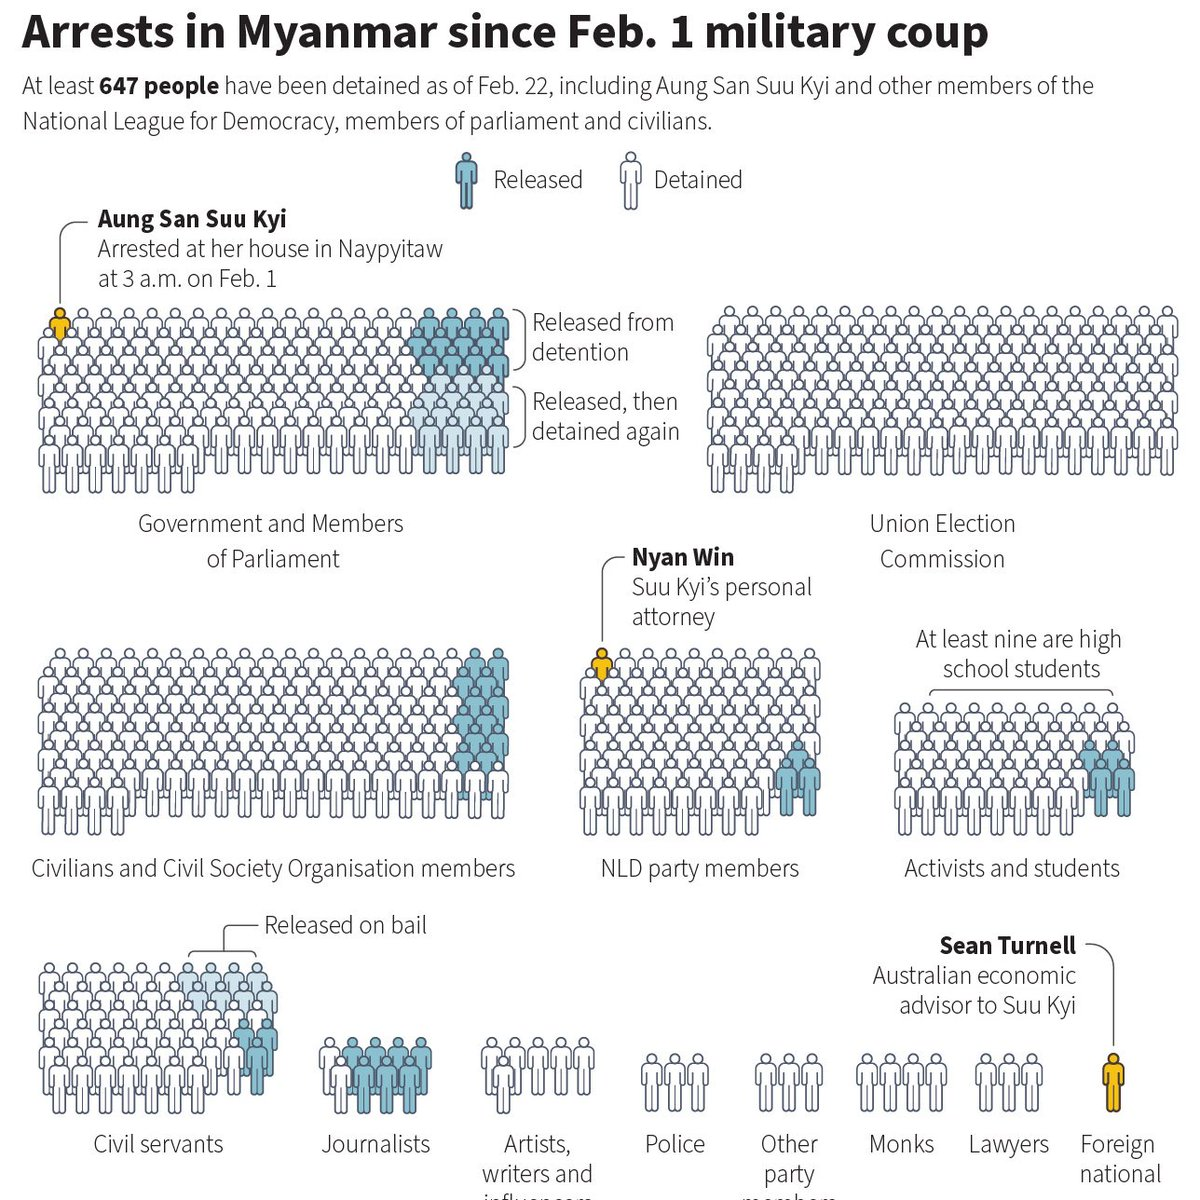 Data from @aapp_burma shows at least 647 people had been detained in Myanmar since the Feb. 1 coup as of Feb 22 - an increase of 45 in one day. That's just those that have been confirmed. #WhatsHappeningInMyanmar https://t.co/EUWQqGGbCn